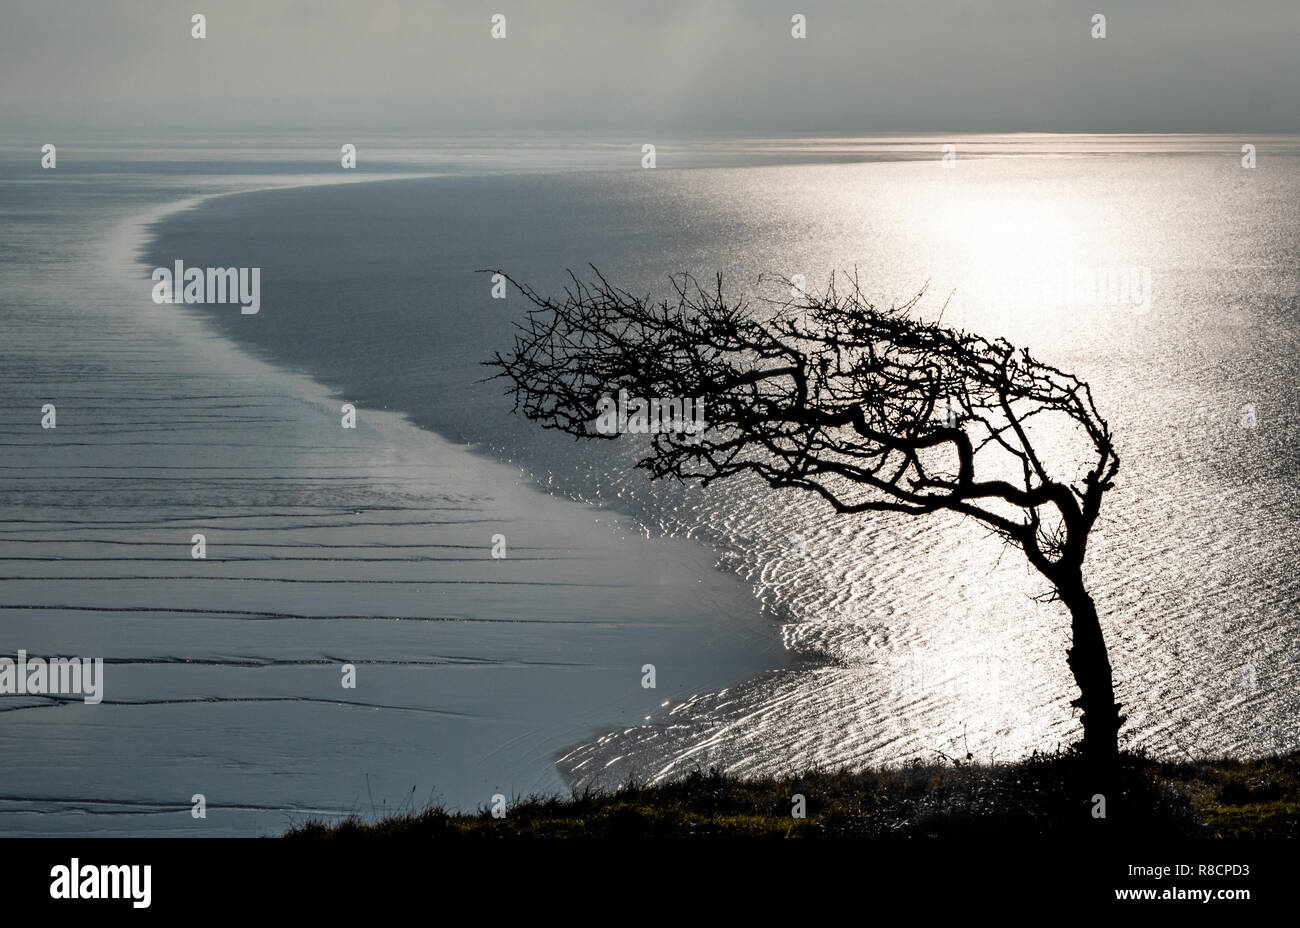 Crooked hawthorn shaped by prevailing westerly winds and low tide line at Brean Down peninsular on the Somerset coast - Stock Image